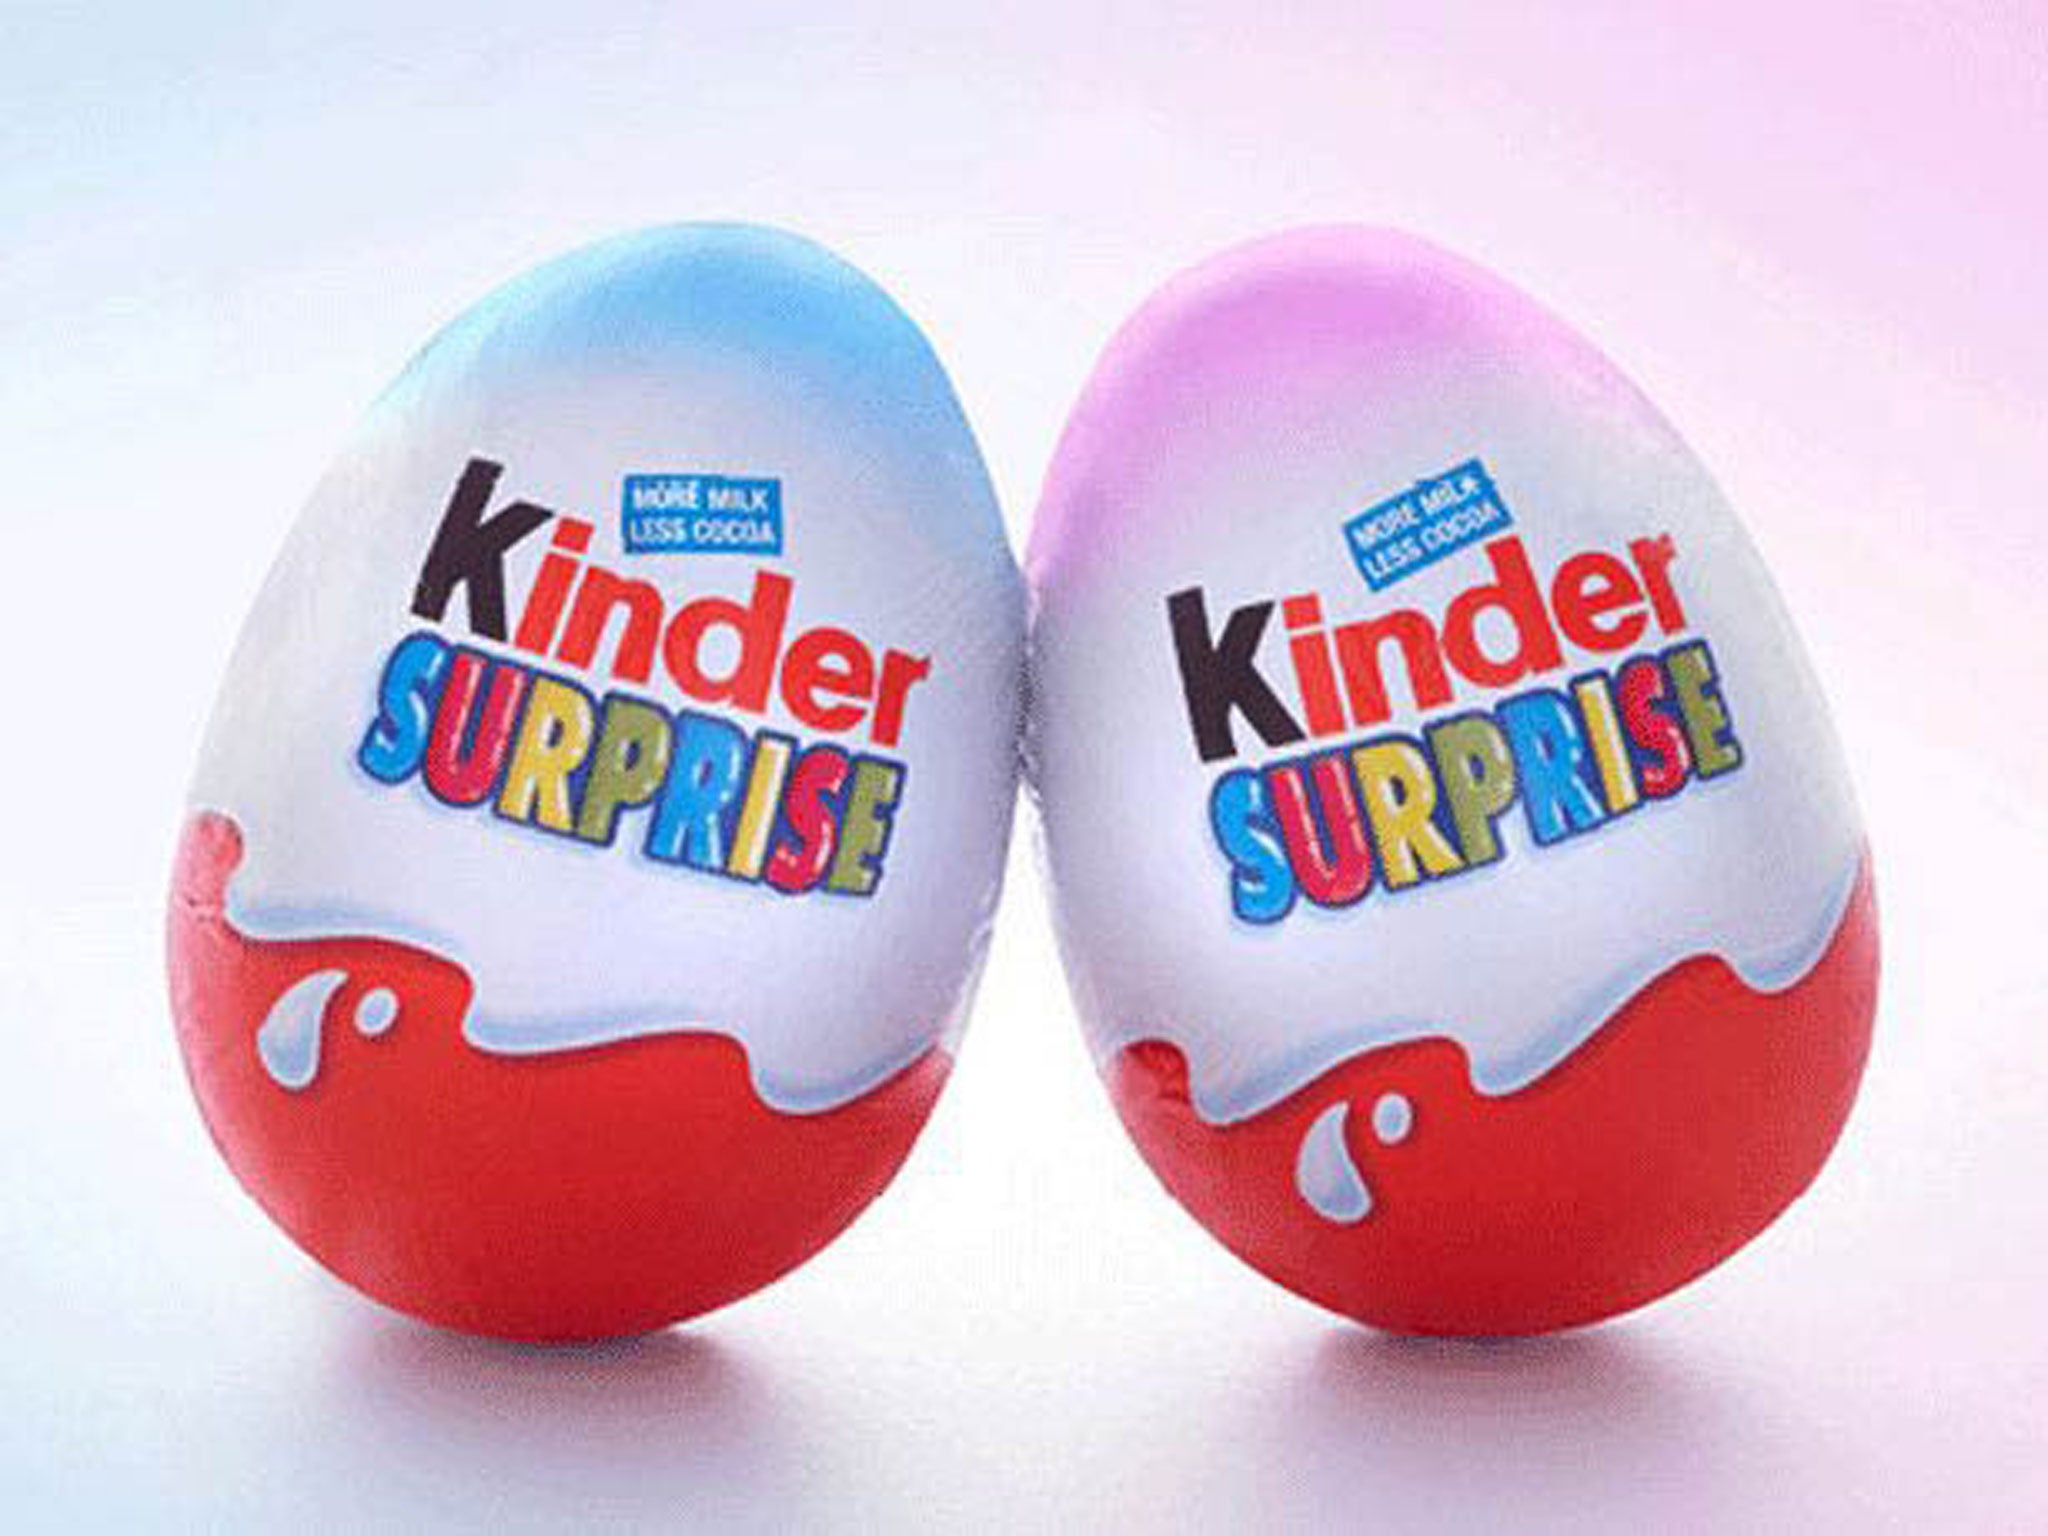 Kinder Surprise in stereotyping row over pink and blue eggs | The ...